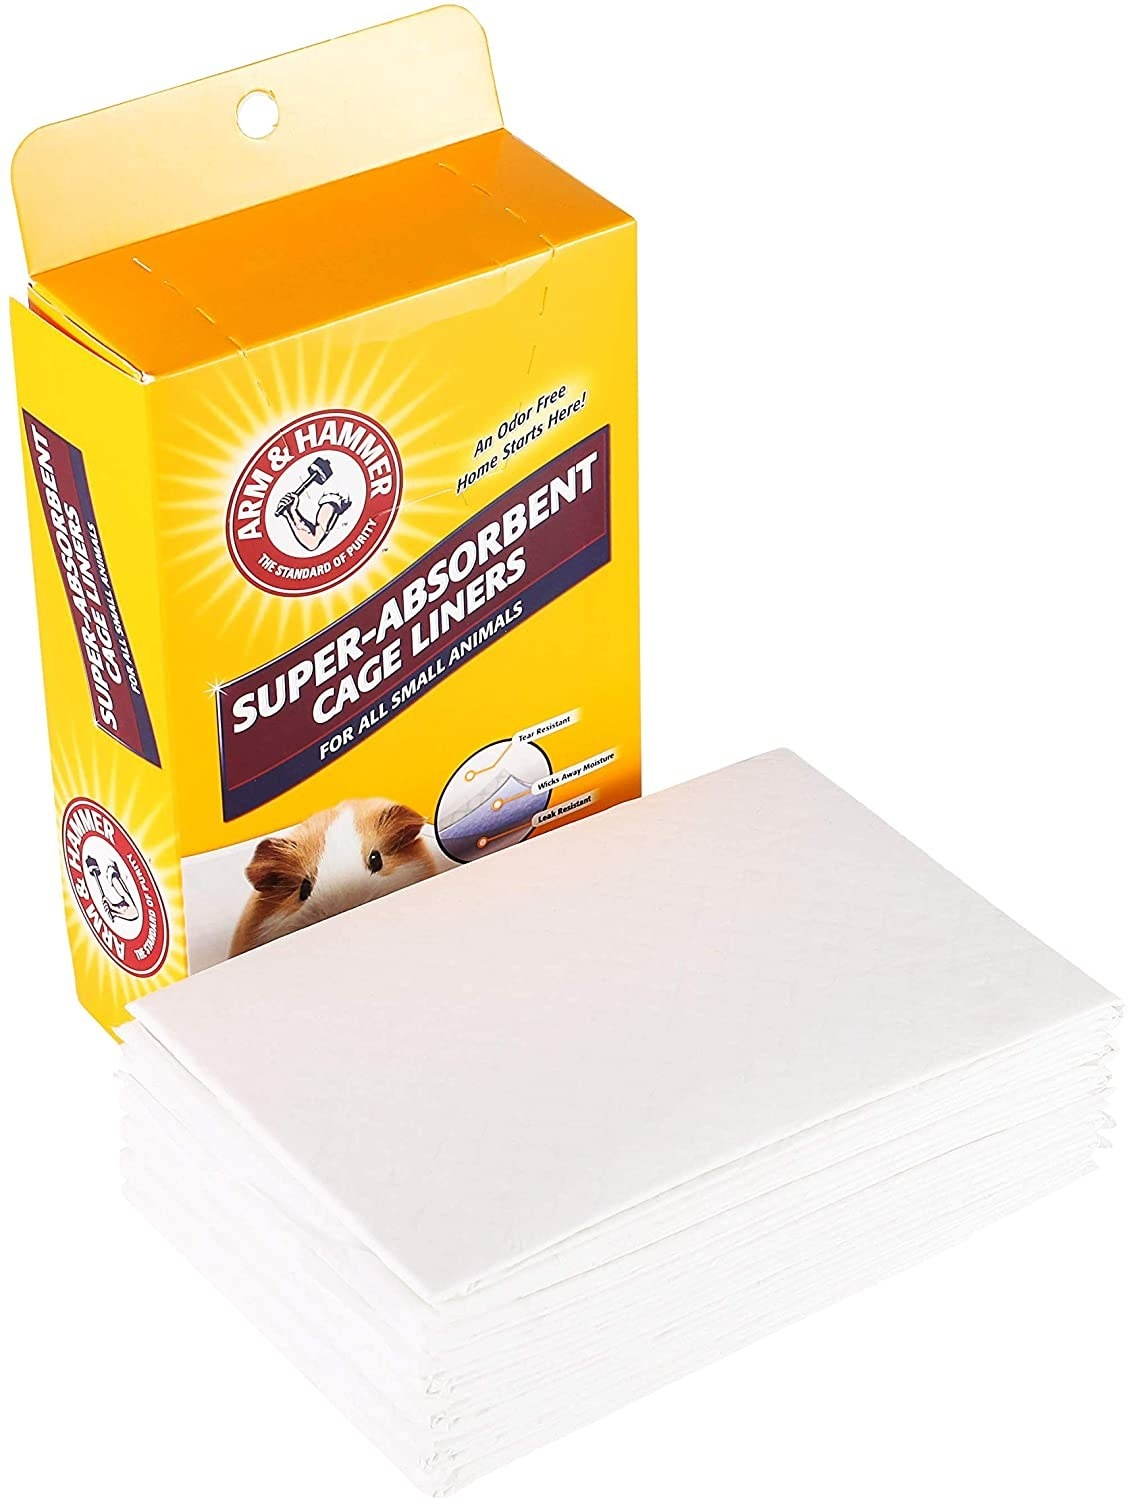 The Arm & Hammer cage liner